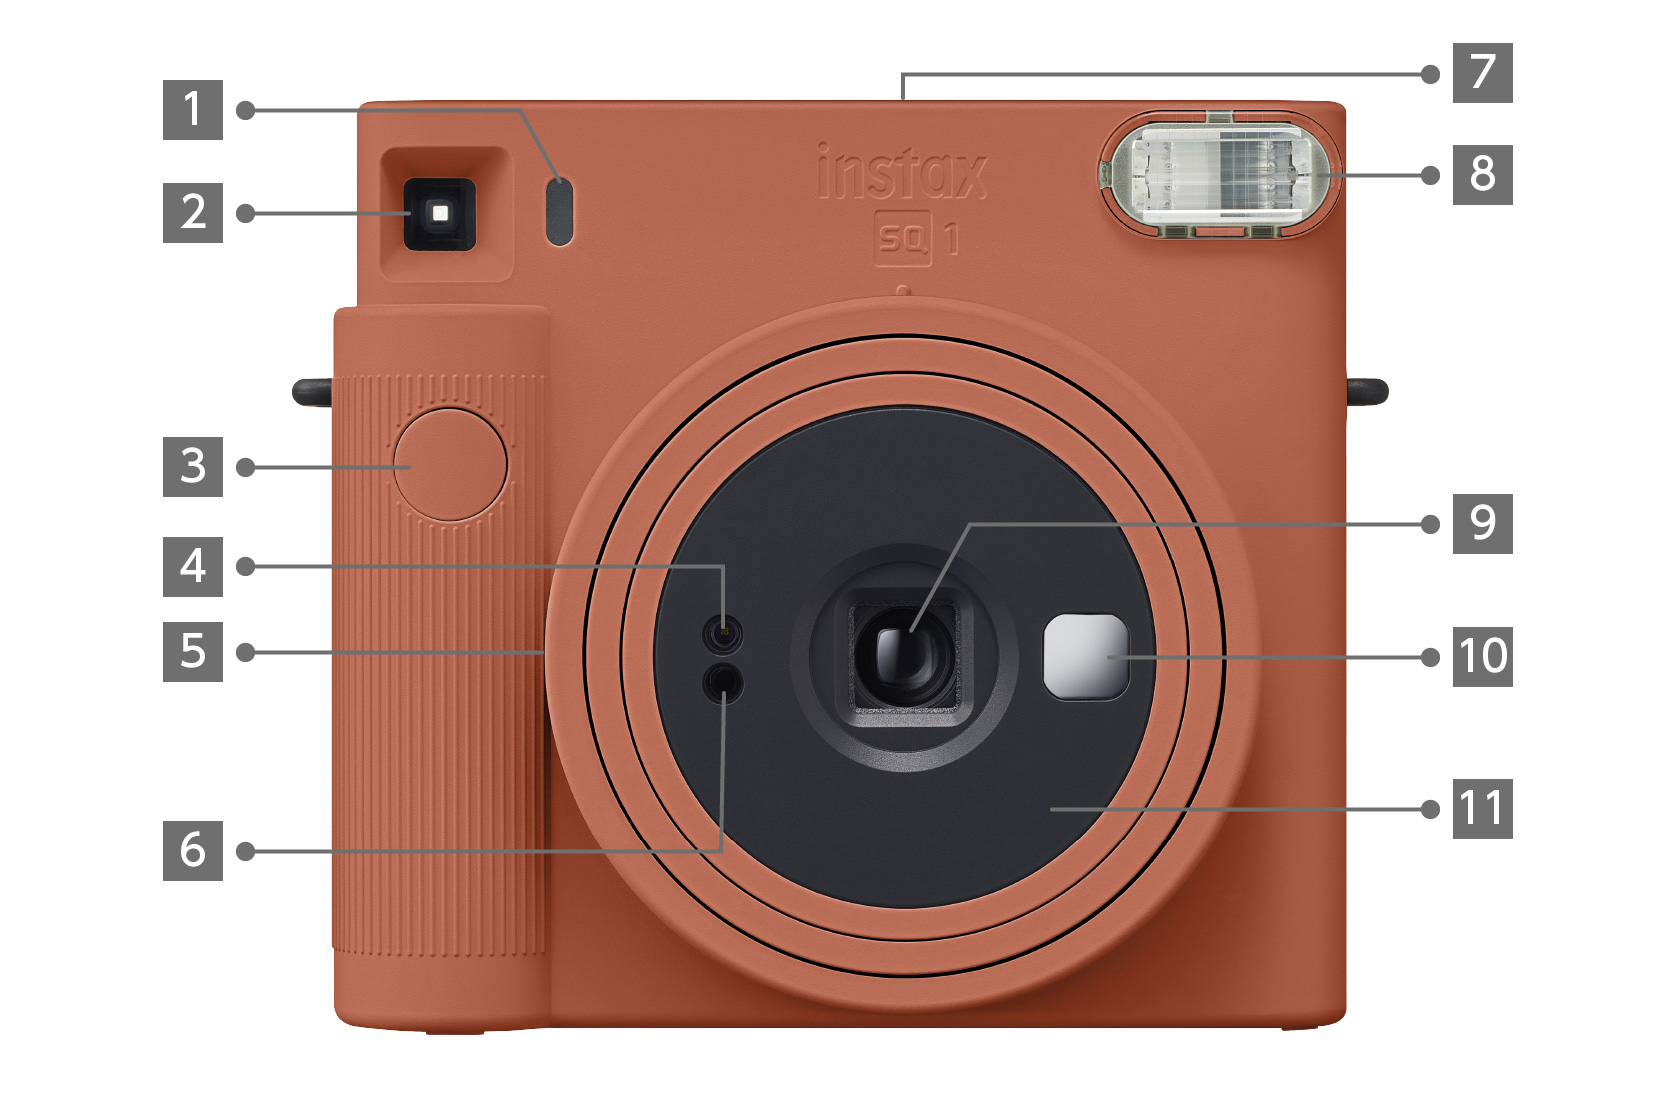 [photo] INSTAX SQUARE SQ1 camera in Terracotta Orange color, Front view